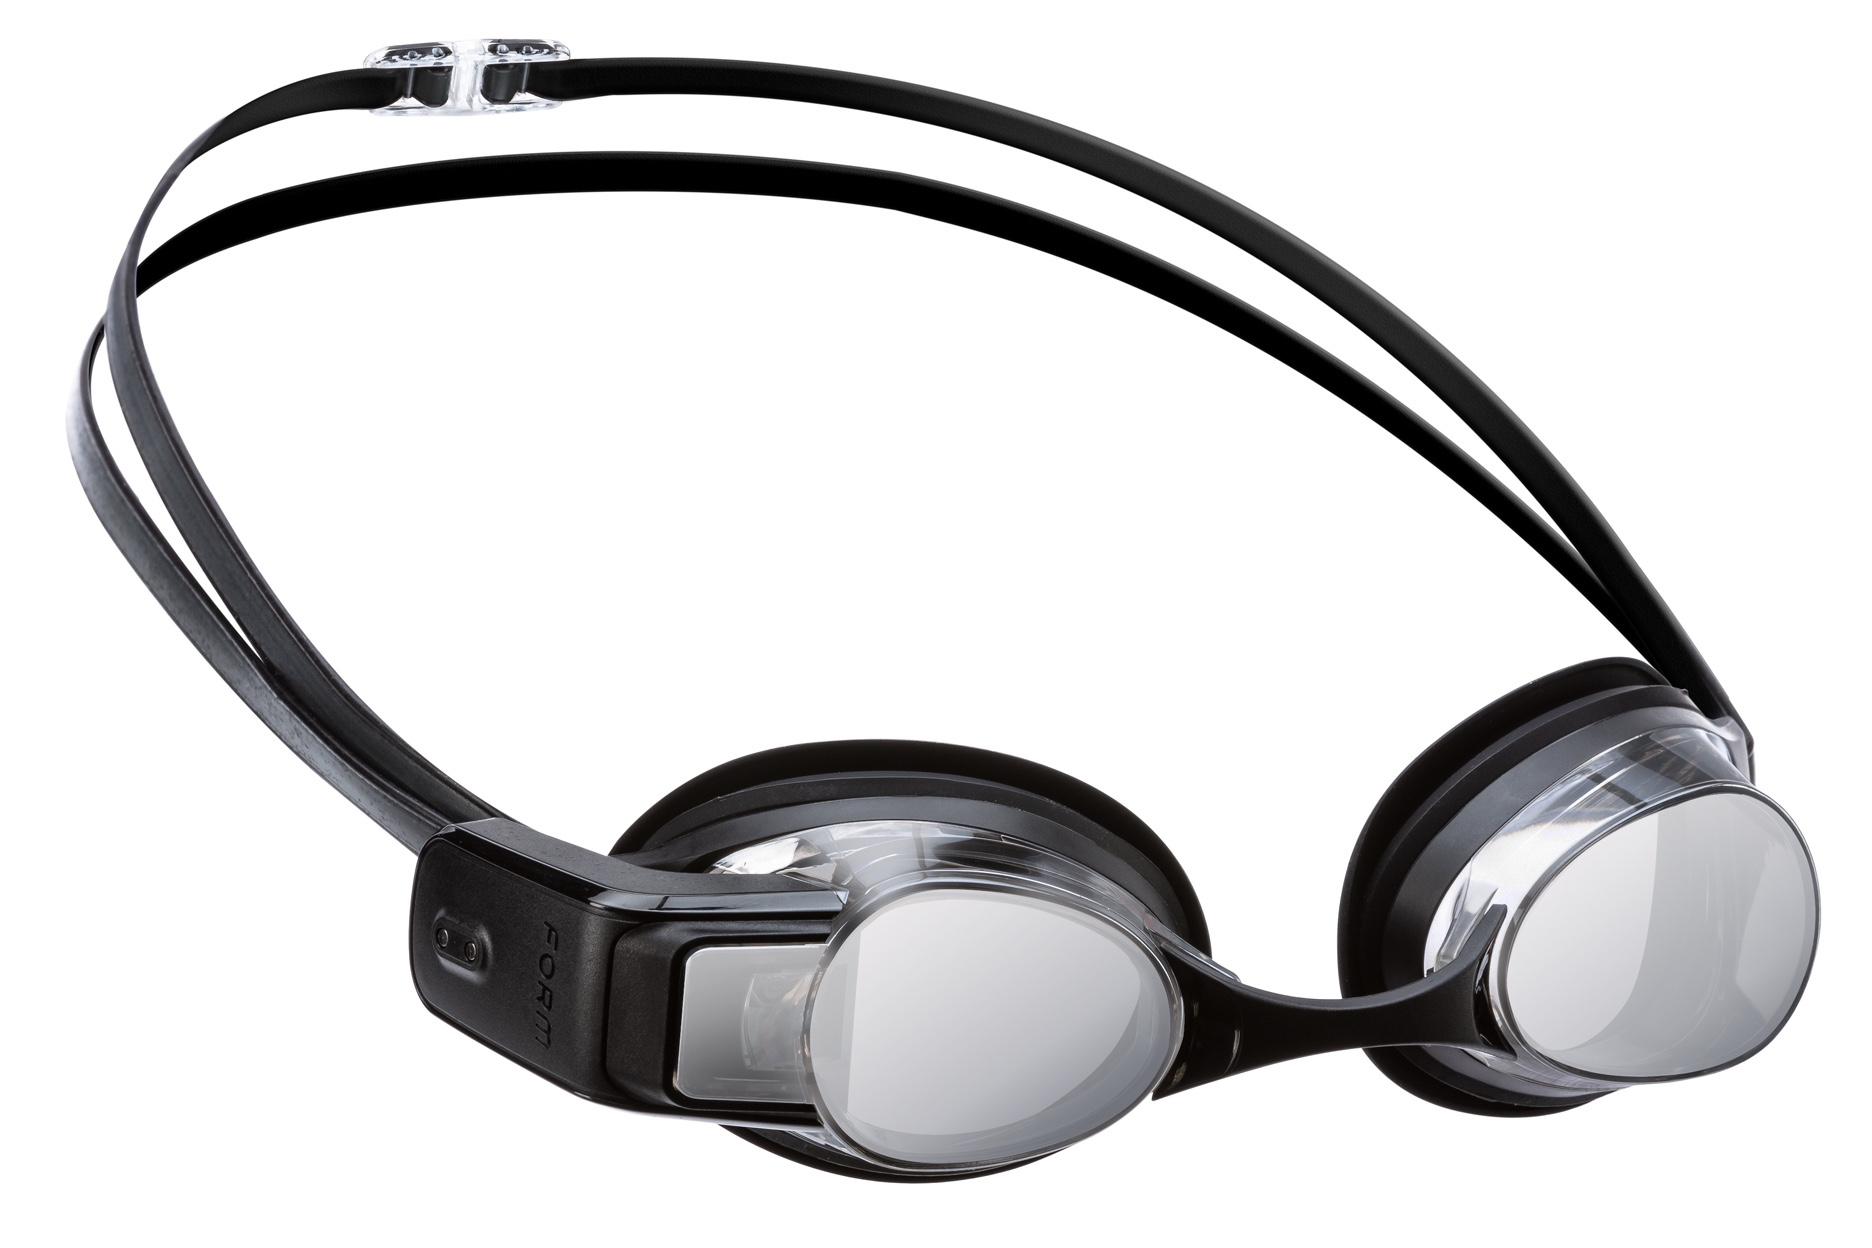 TitaniumGeek img 1429 1 FORM Swim Goggles   Pipeline Post Gear Reviews Triathlon    Image of img 1429 1